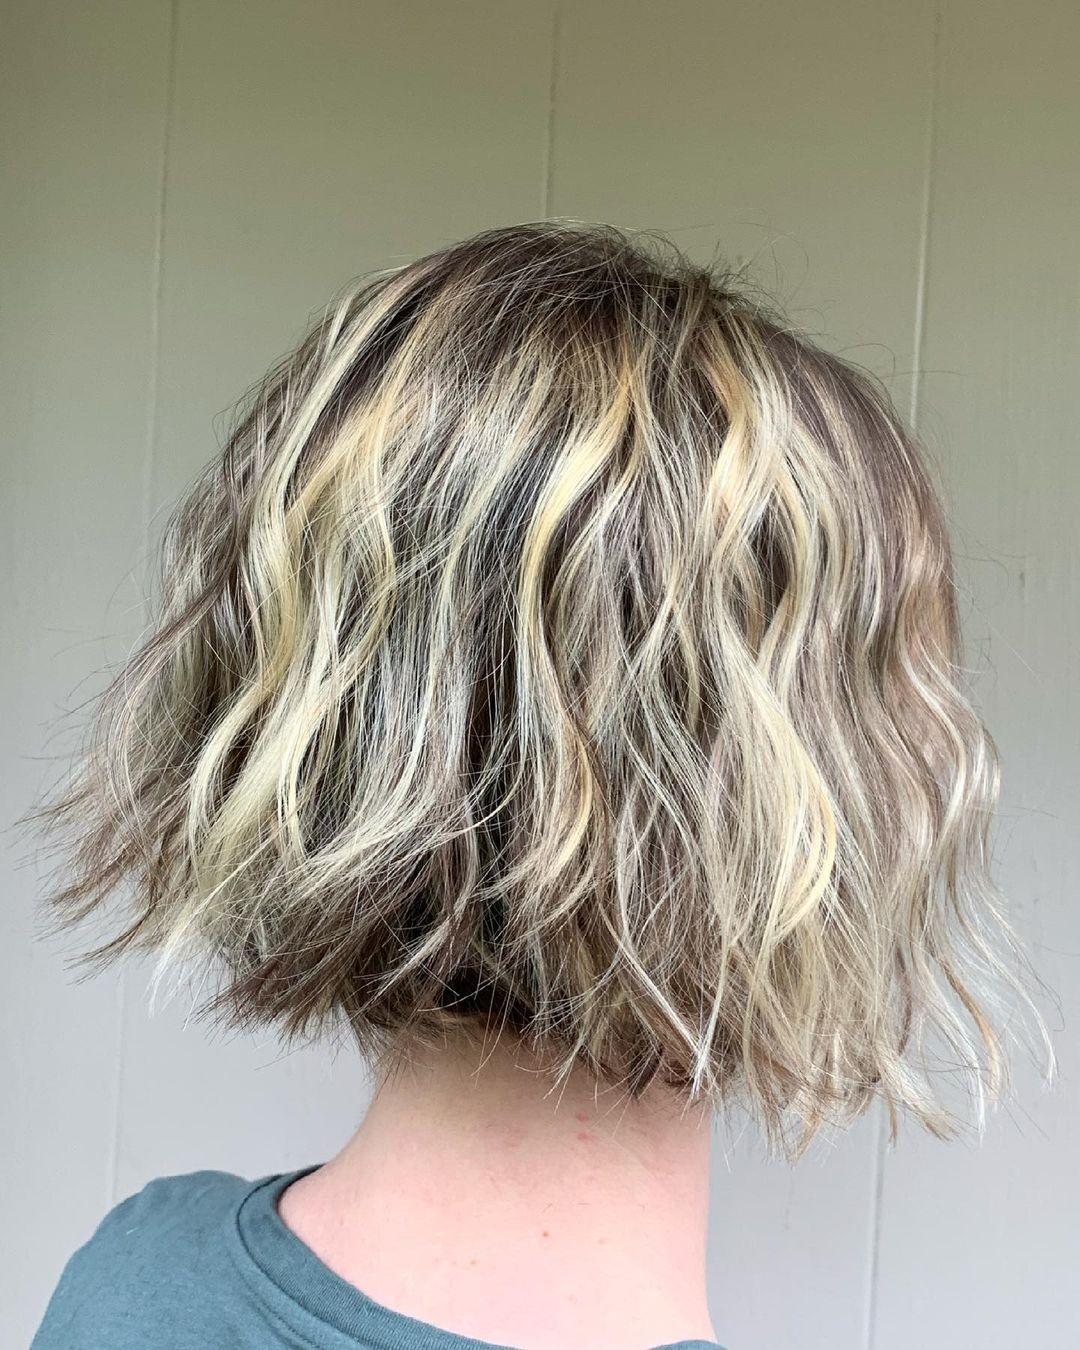 short hairstyle names most trendy and popular 23